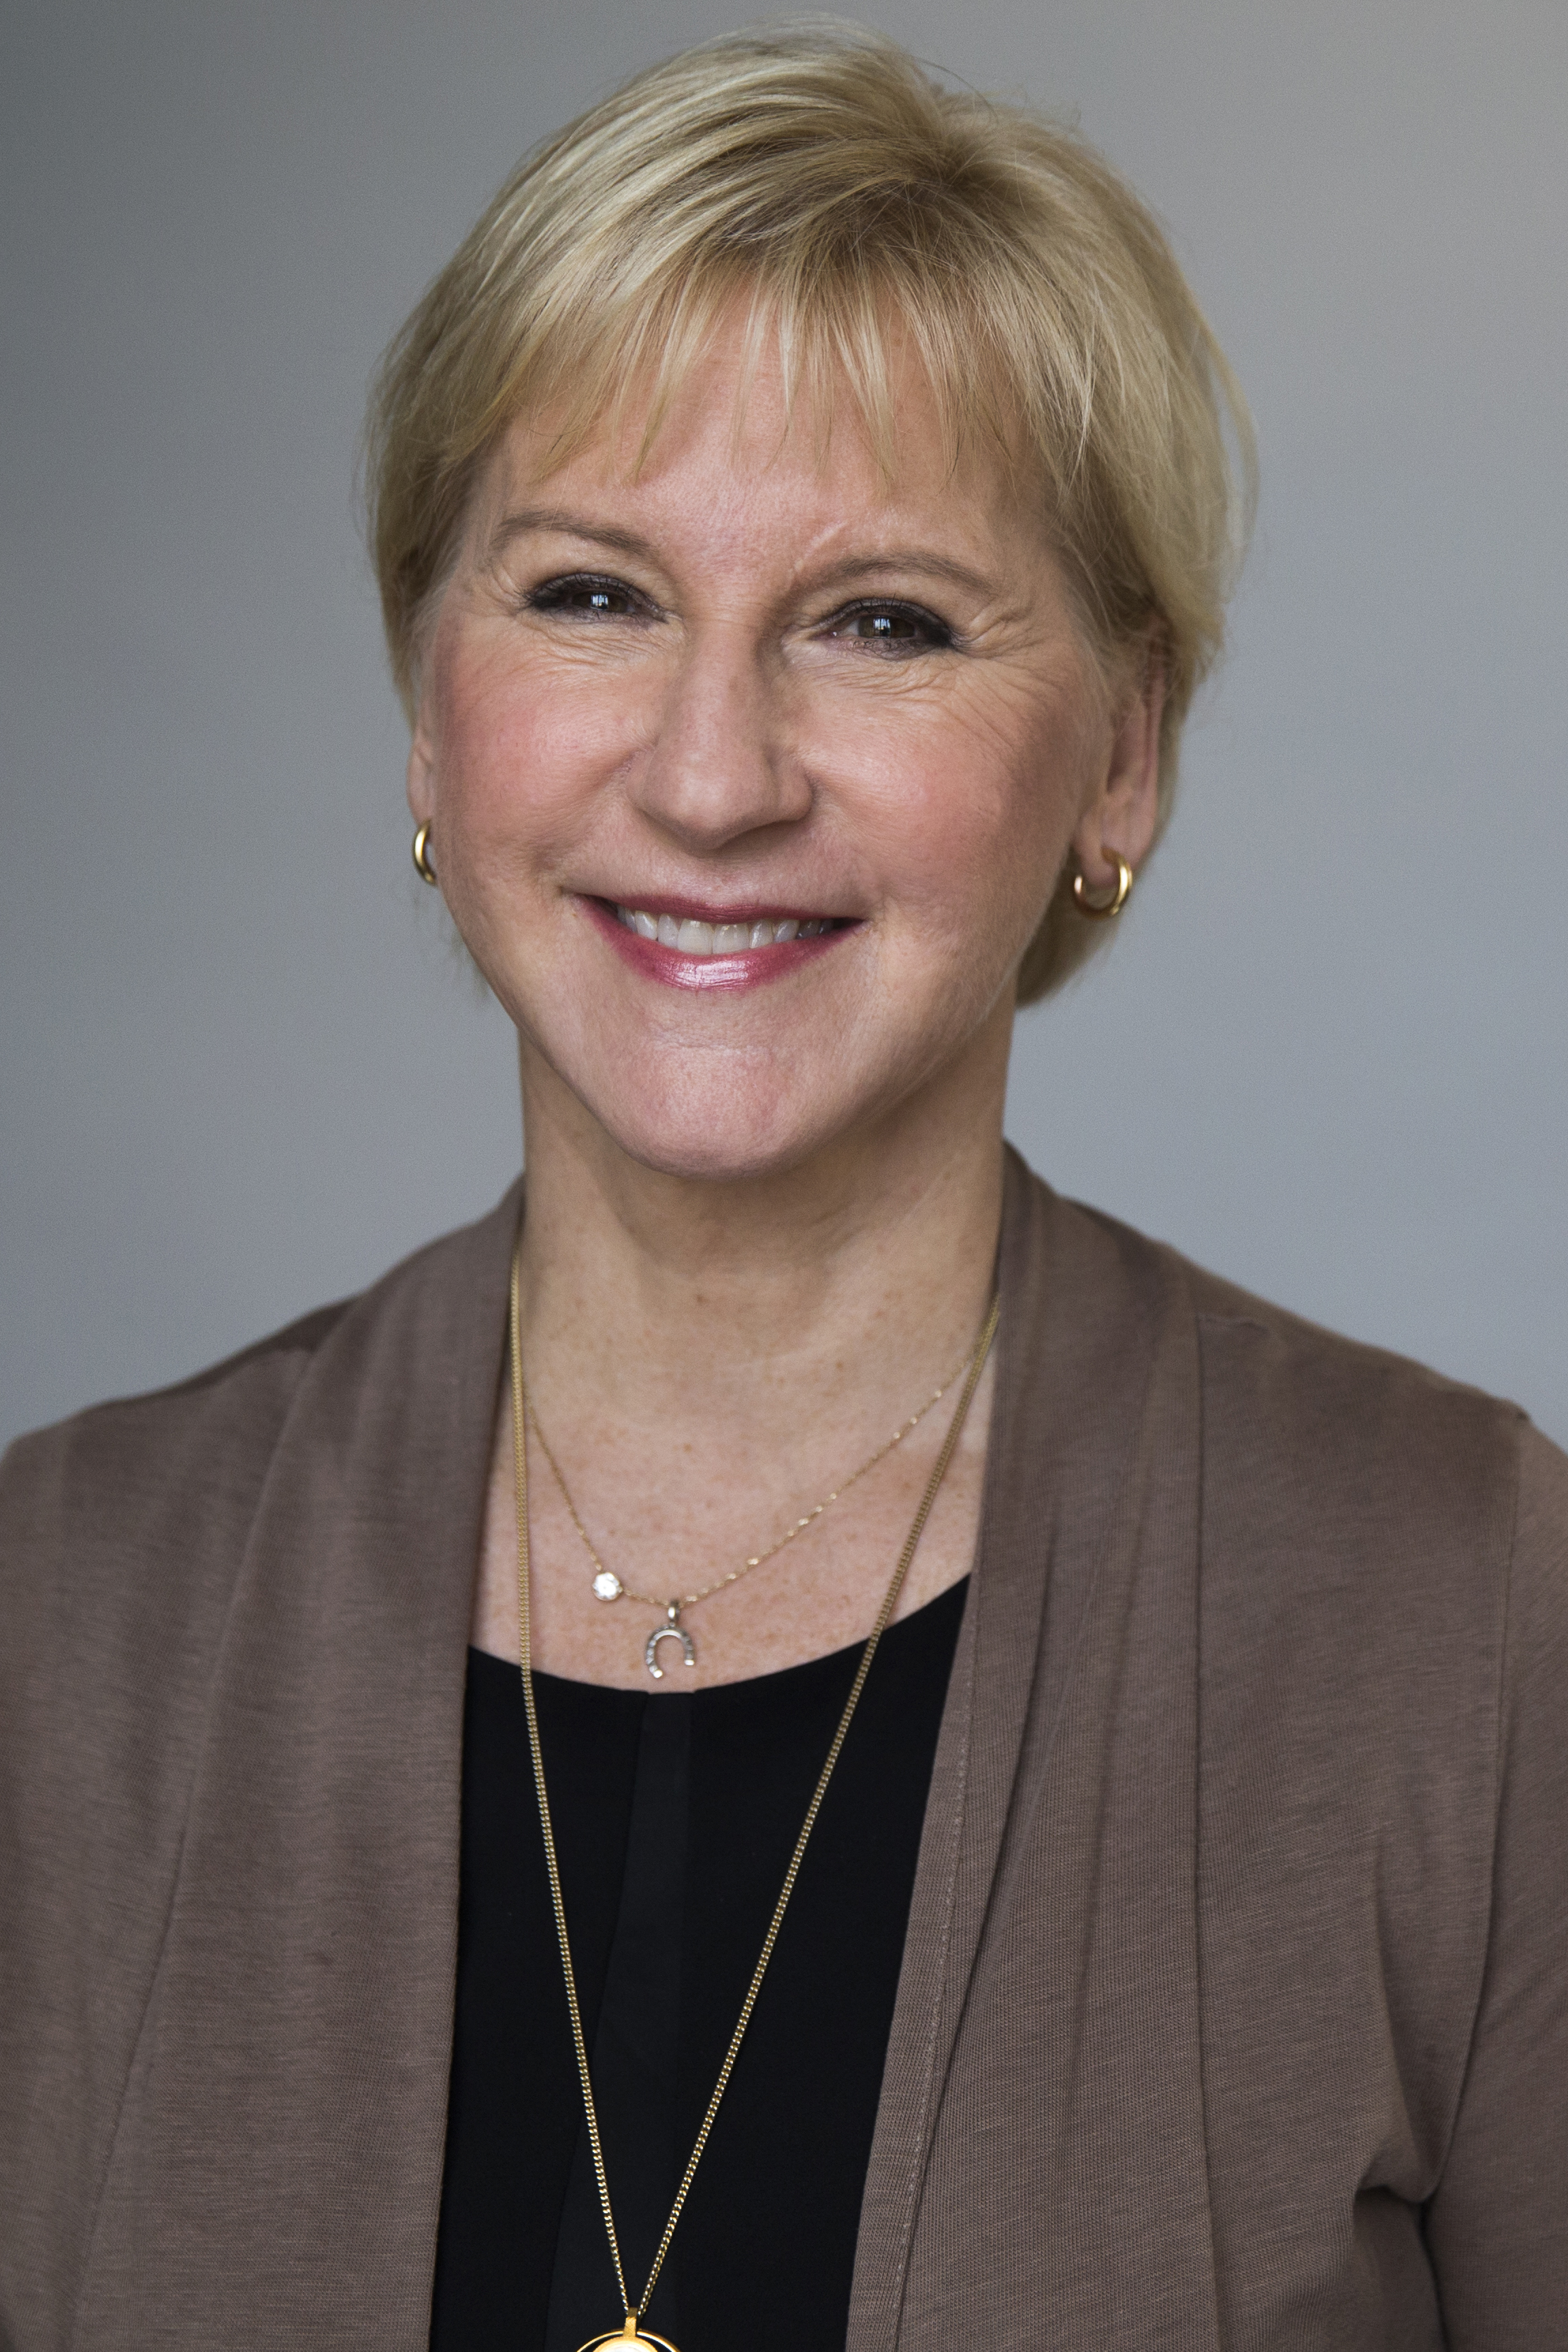 Margot Wallström, Swedish Minister for Foreign Affairs